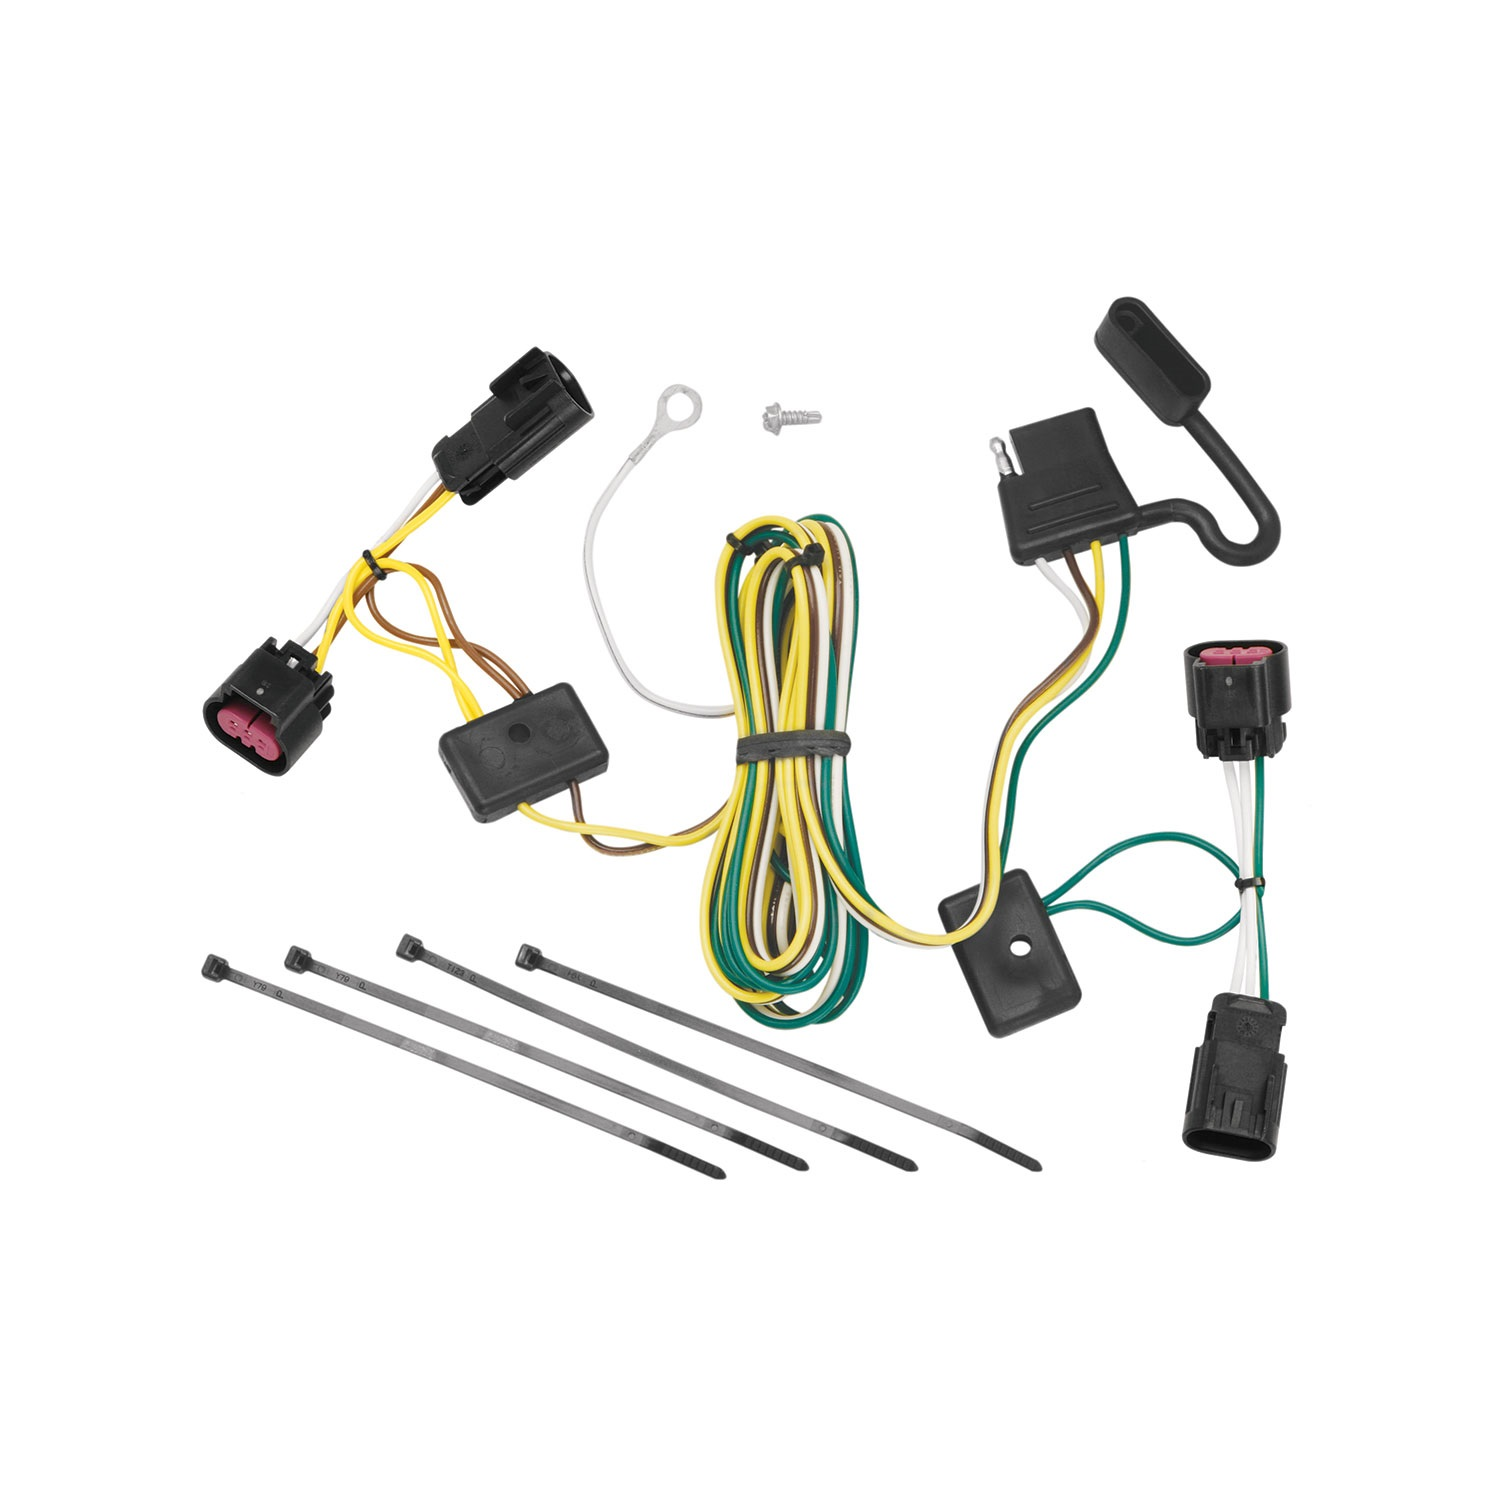 T Connector Trailer Wiring Harness Walmart For Curt Tconnector Nissan Vehicle To 118452 07 08